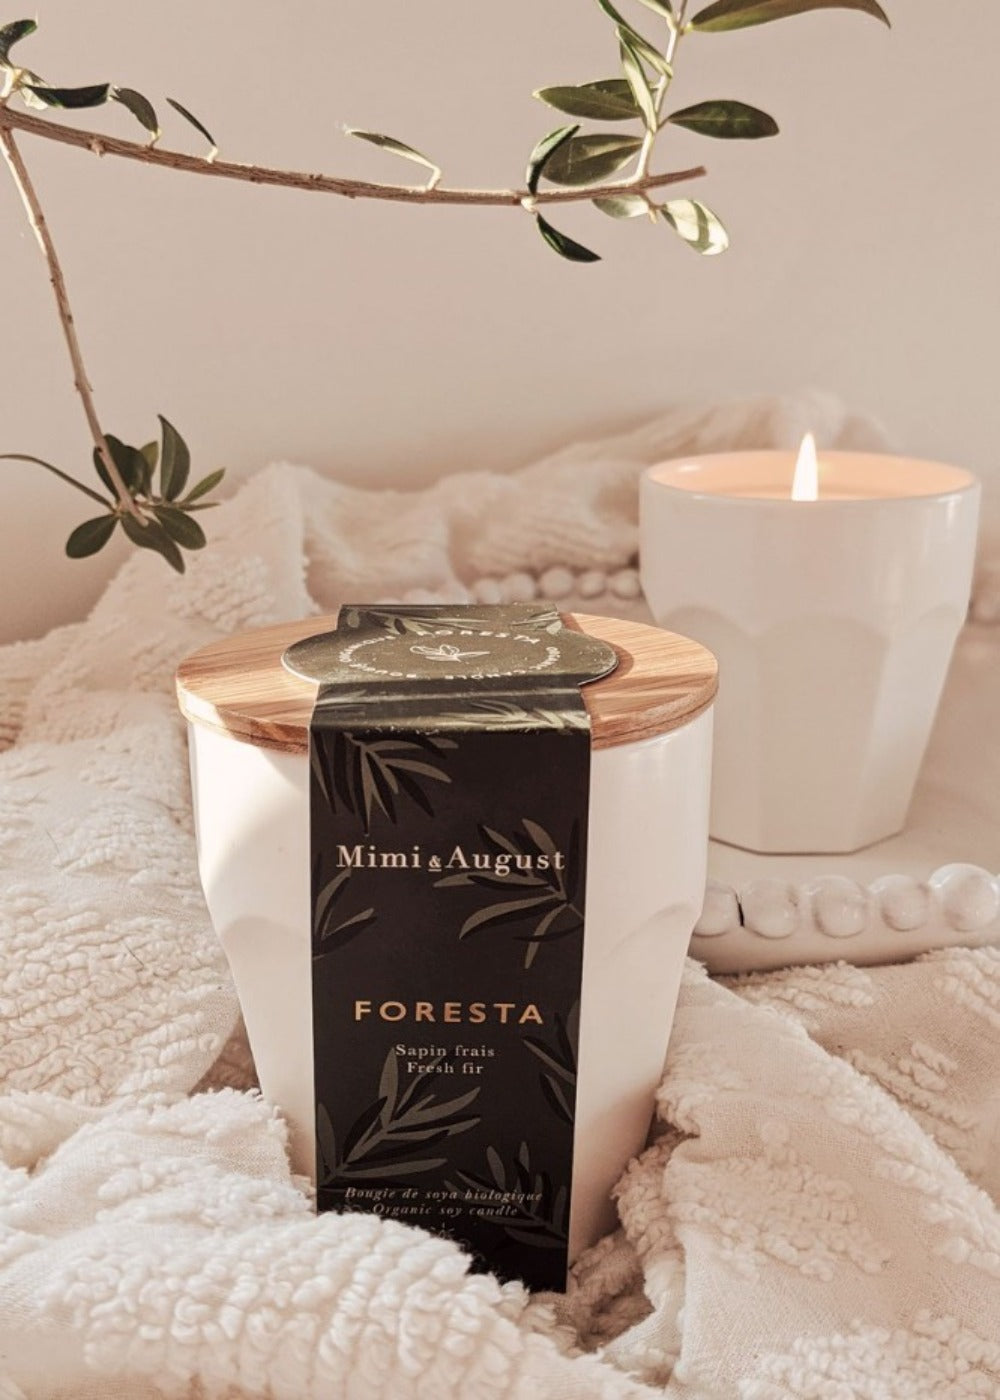 Foresta scented soy wax candle handmade in Canada by Mimi & August